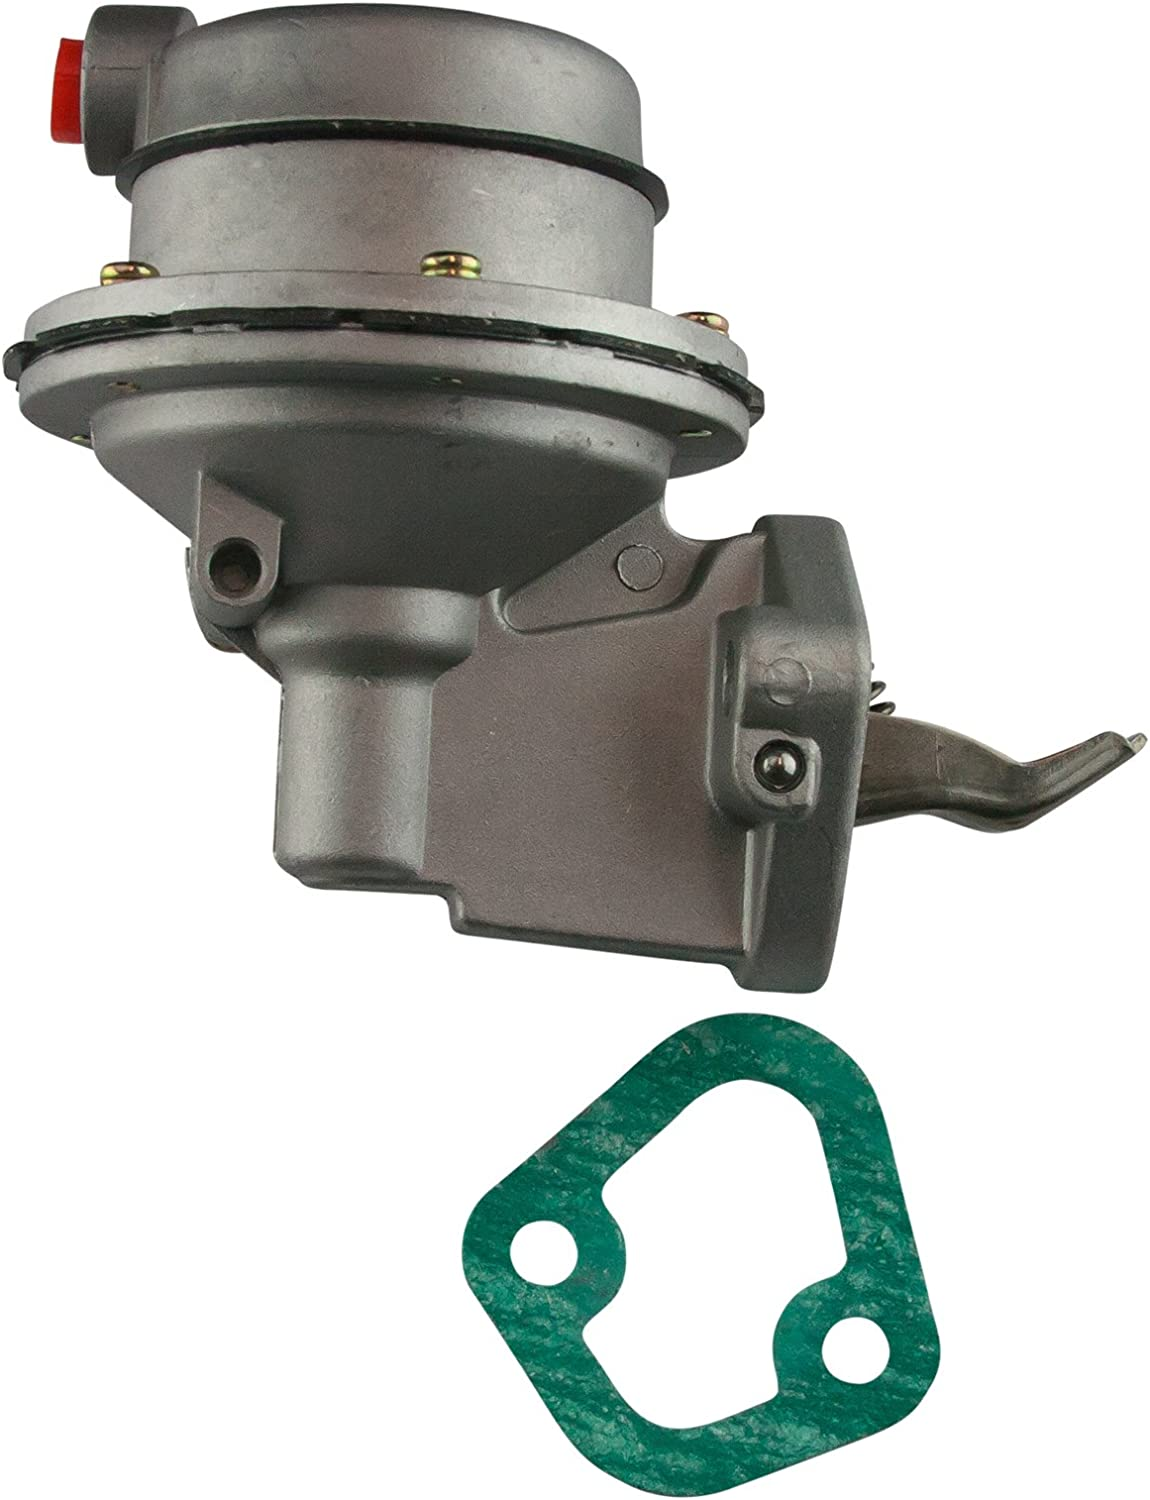 (Compatible With MerCruiser) Sea Water Mechanical Fuel Pump MarkV 454 502 7.4L 8.2L 86167T 818383T (See Description For Fitment) 71tSBFTFSAL